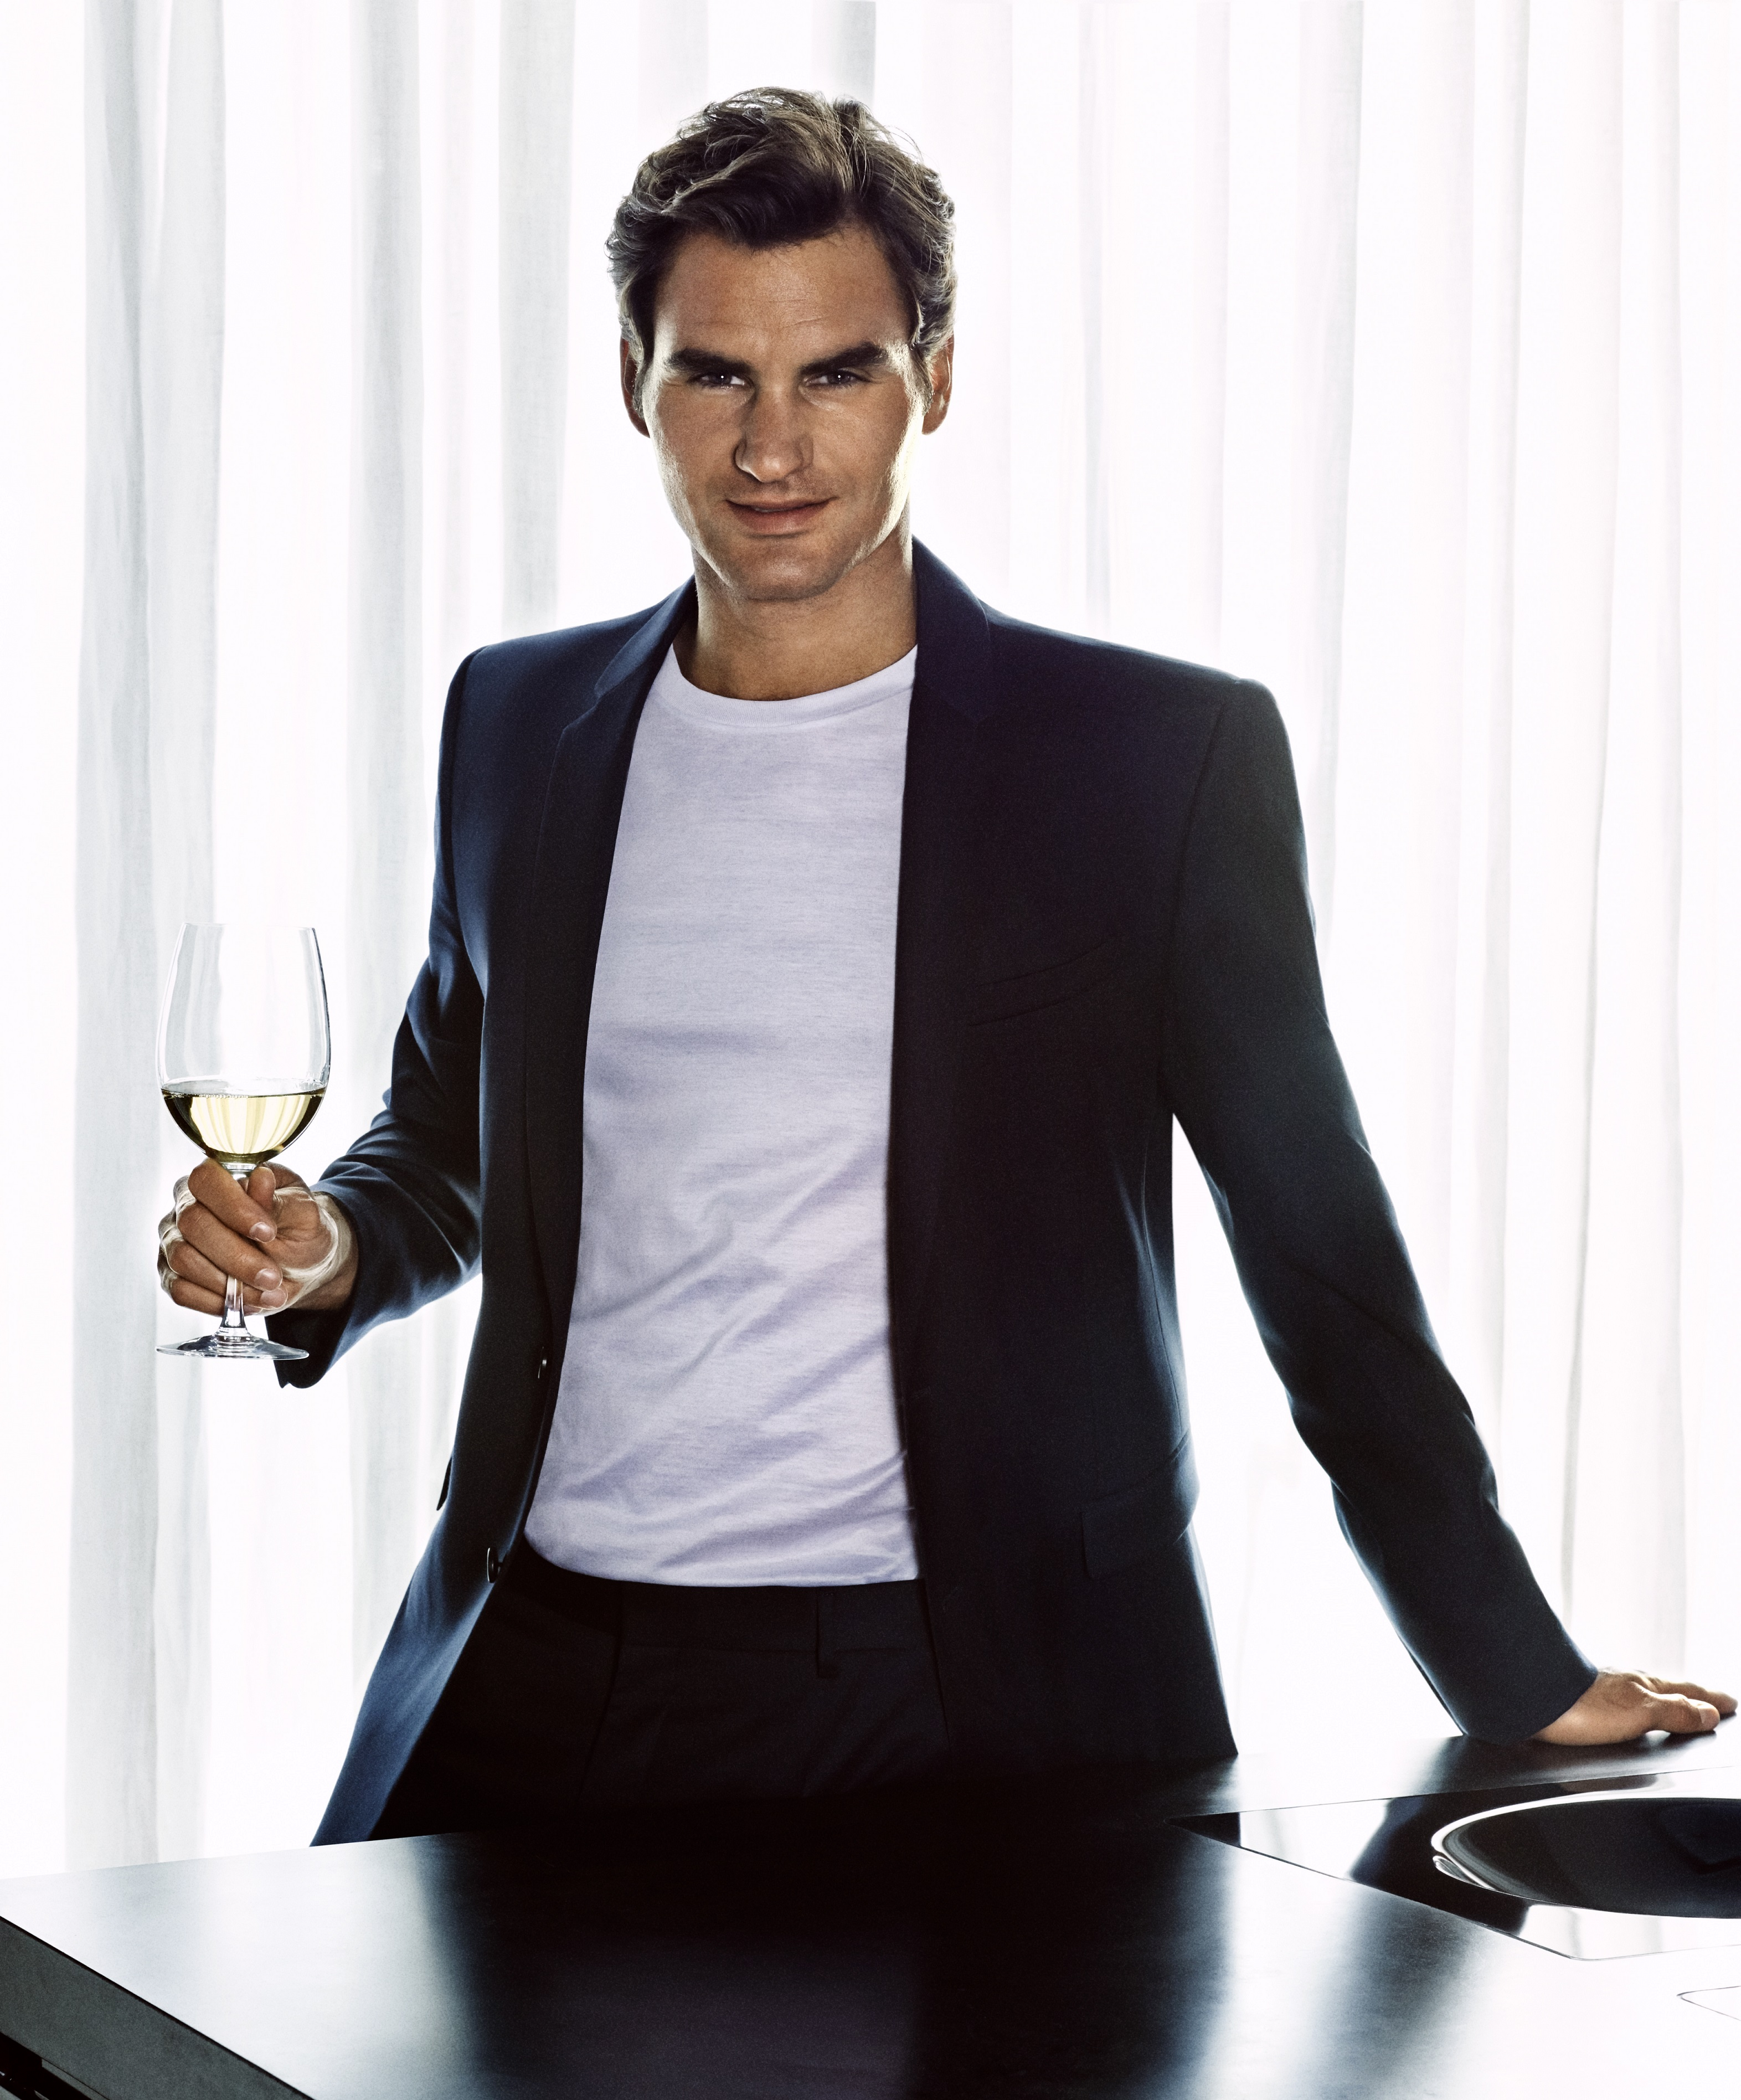 Moët & Chandon Roger Federer PR Visual 1_ph. by Giampaolo Sgura